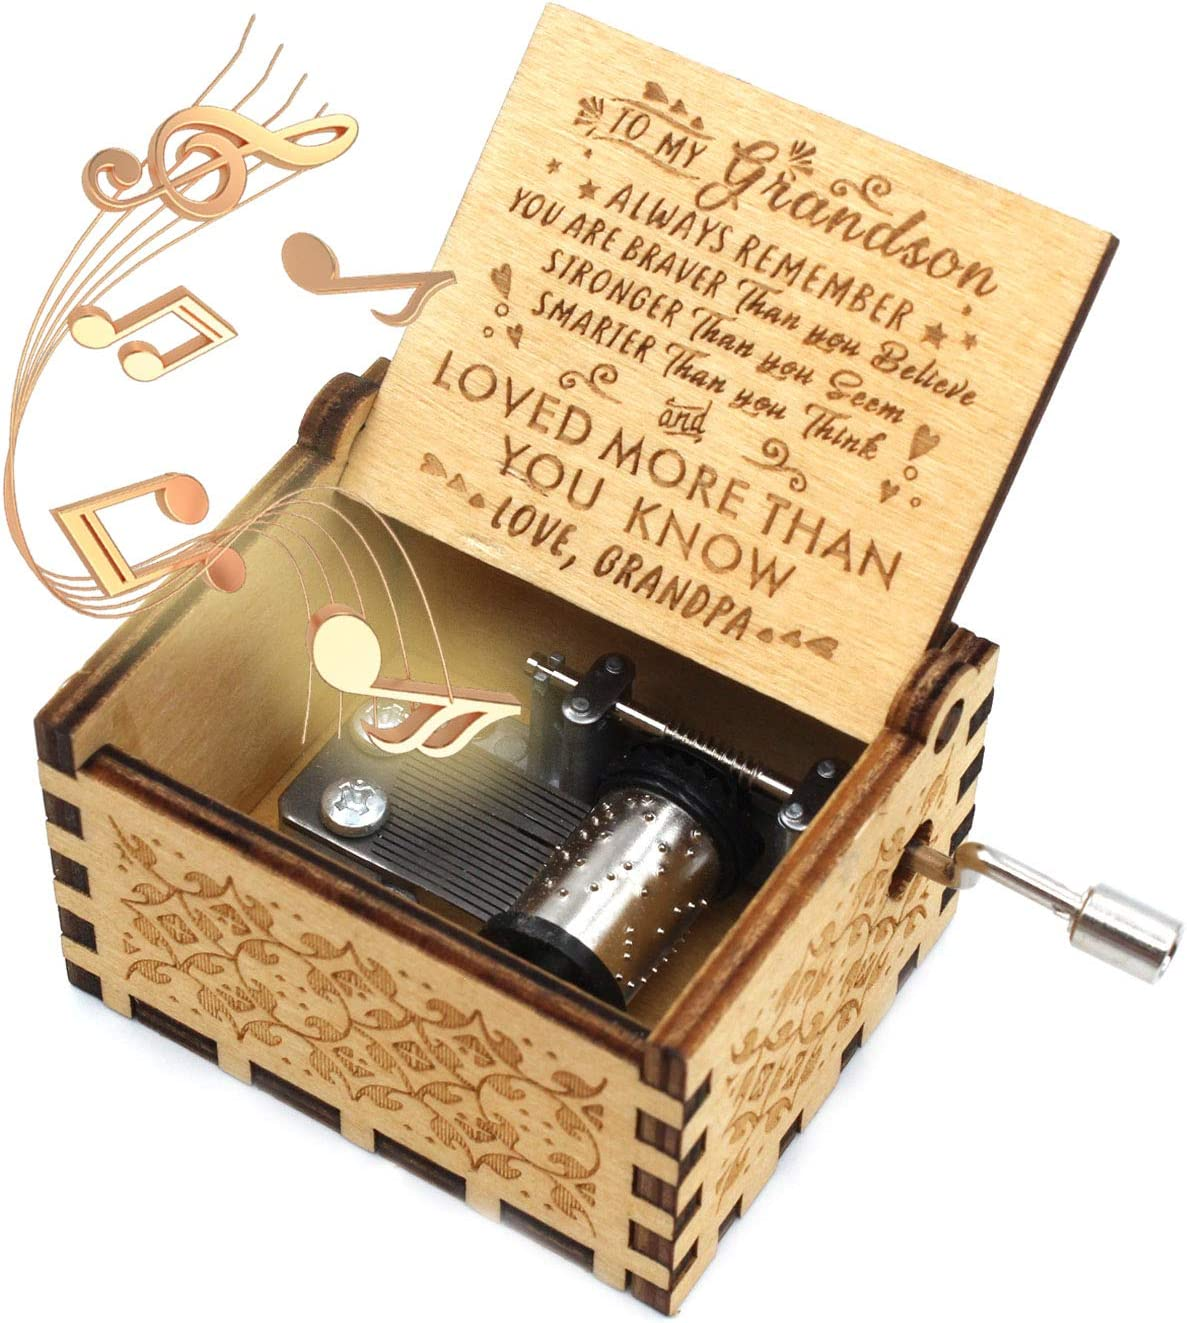 ukebobo Wooden Music Box- You are My Sunshine Music Box, from Grandpa to Grandson, Gifts for Kids - 1 Set